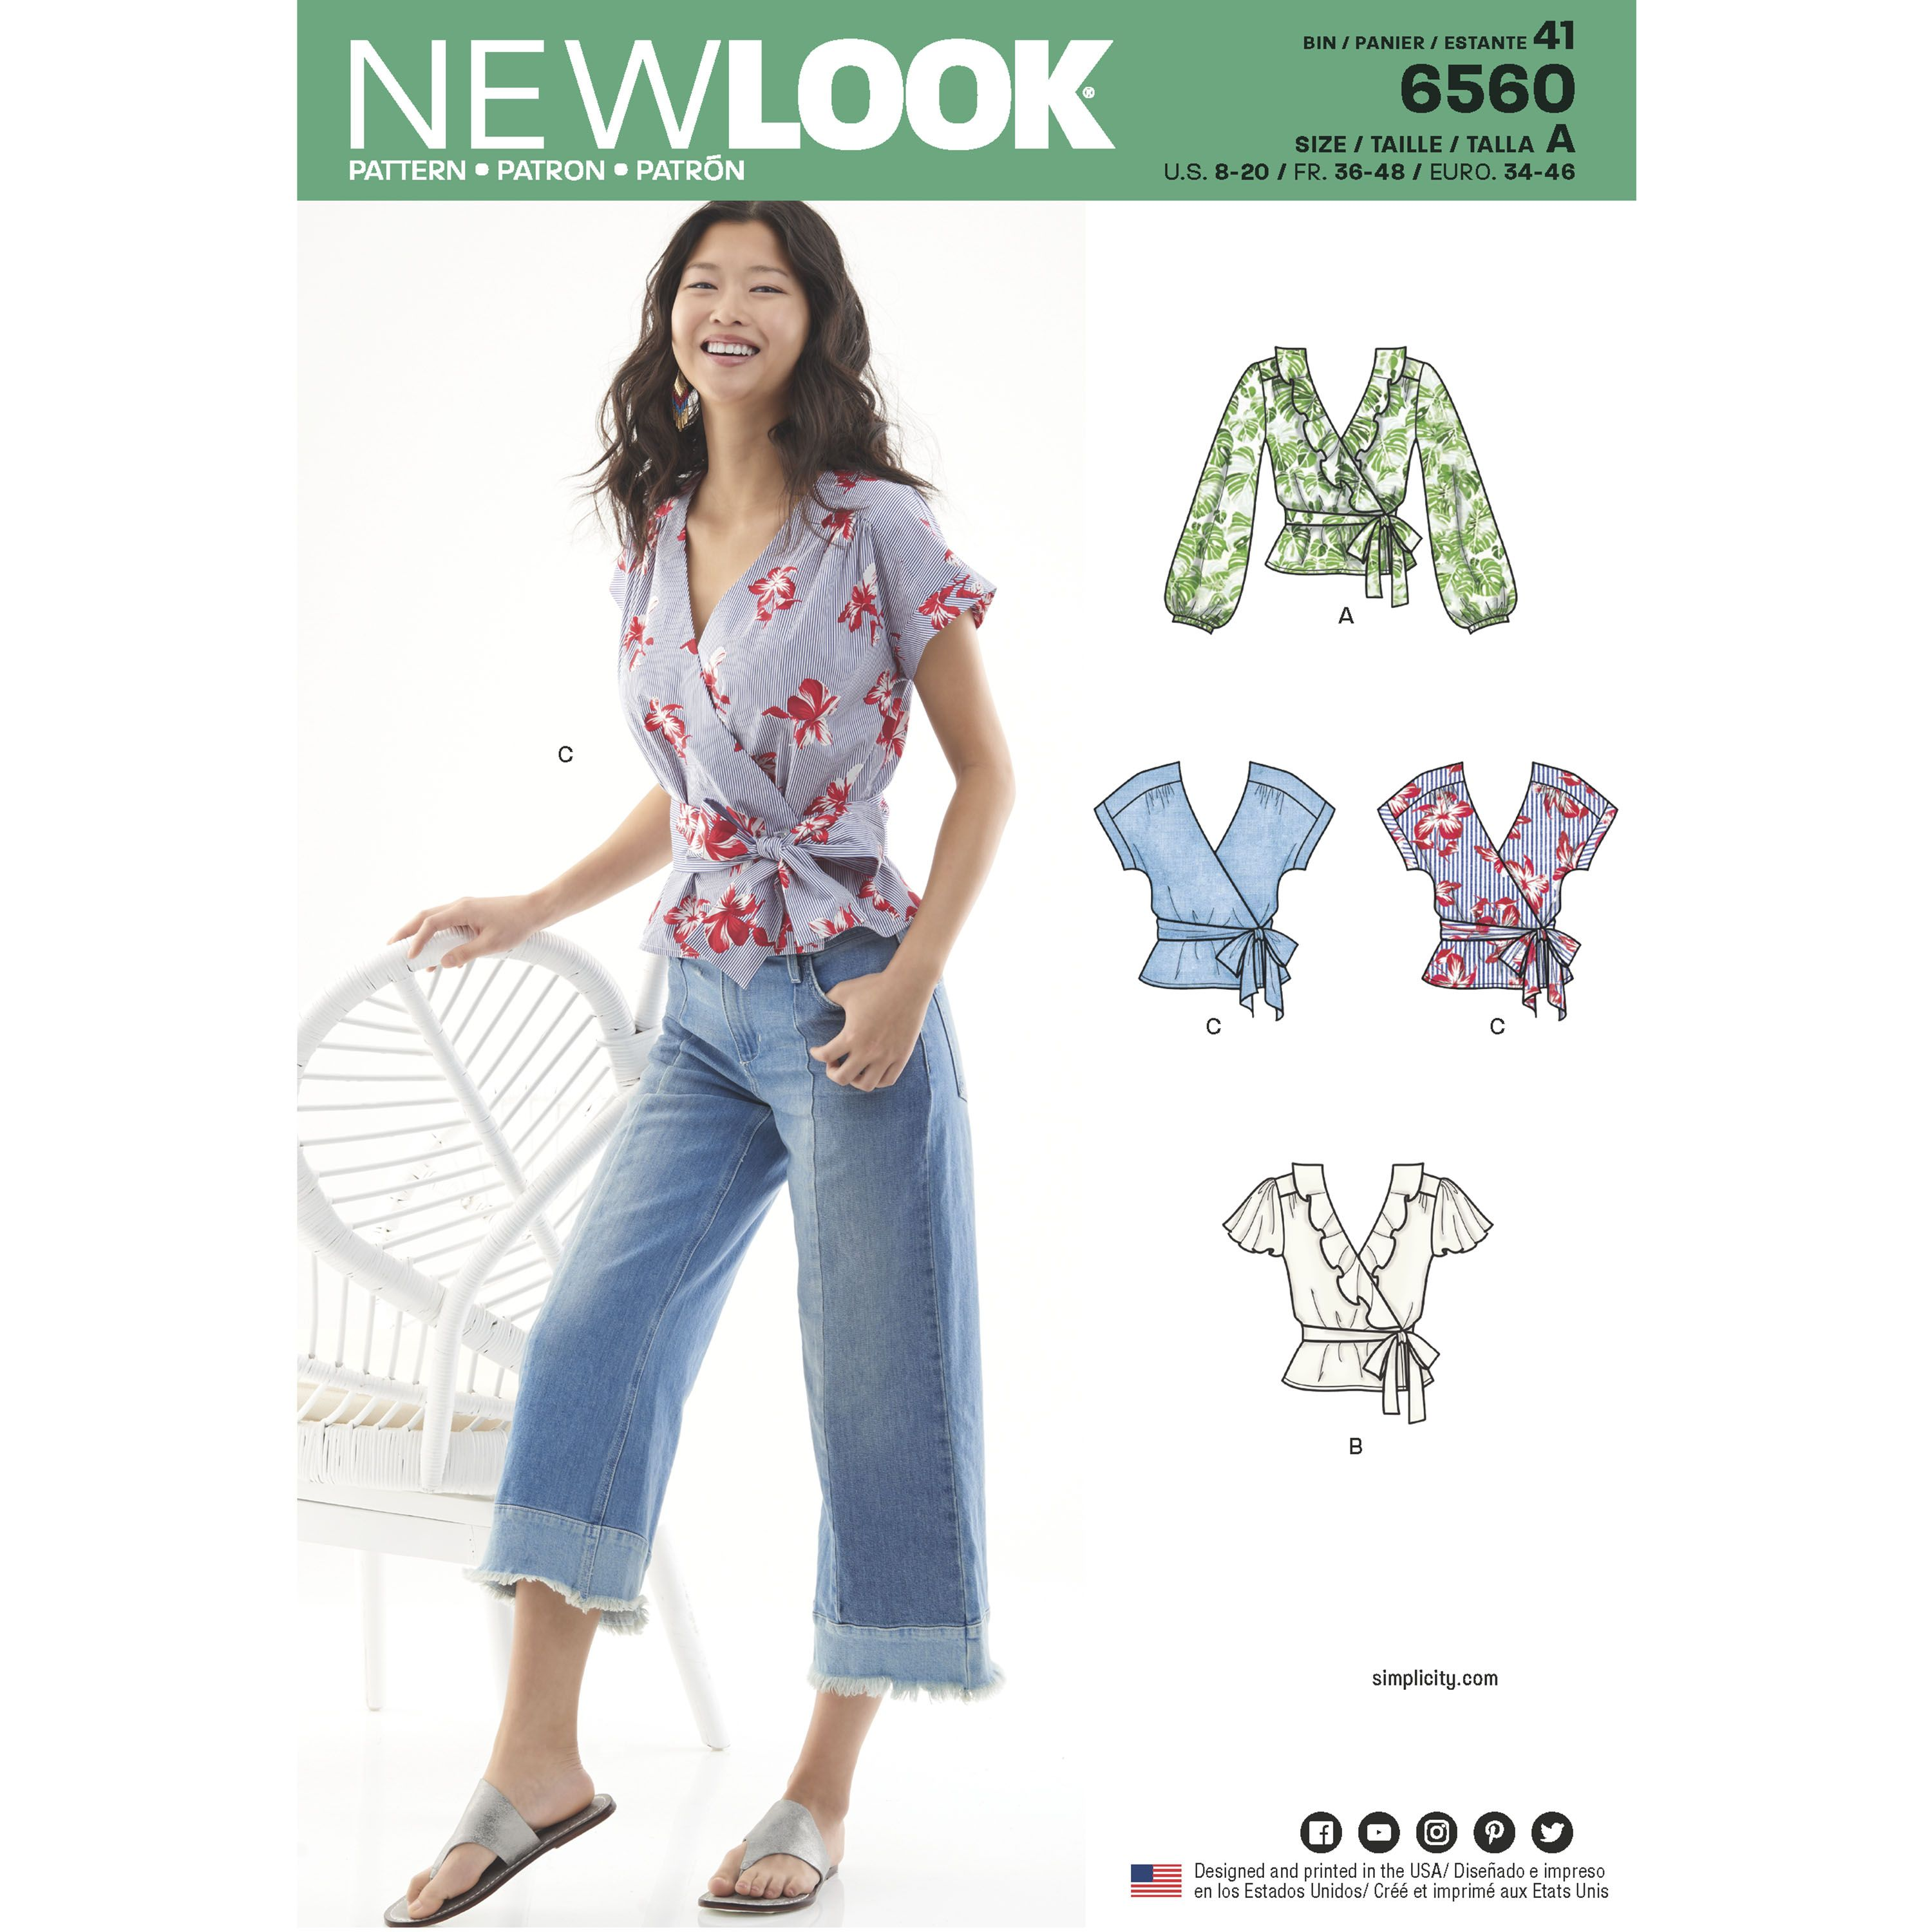 aceea9a825a New Look New Look Pattern 6560 Misses' Wrap Tops sewing pattern ...